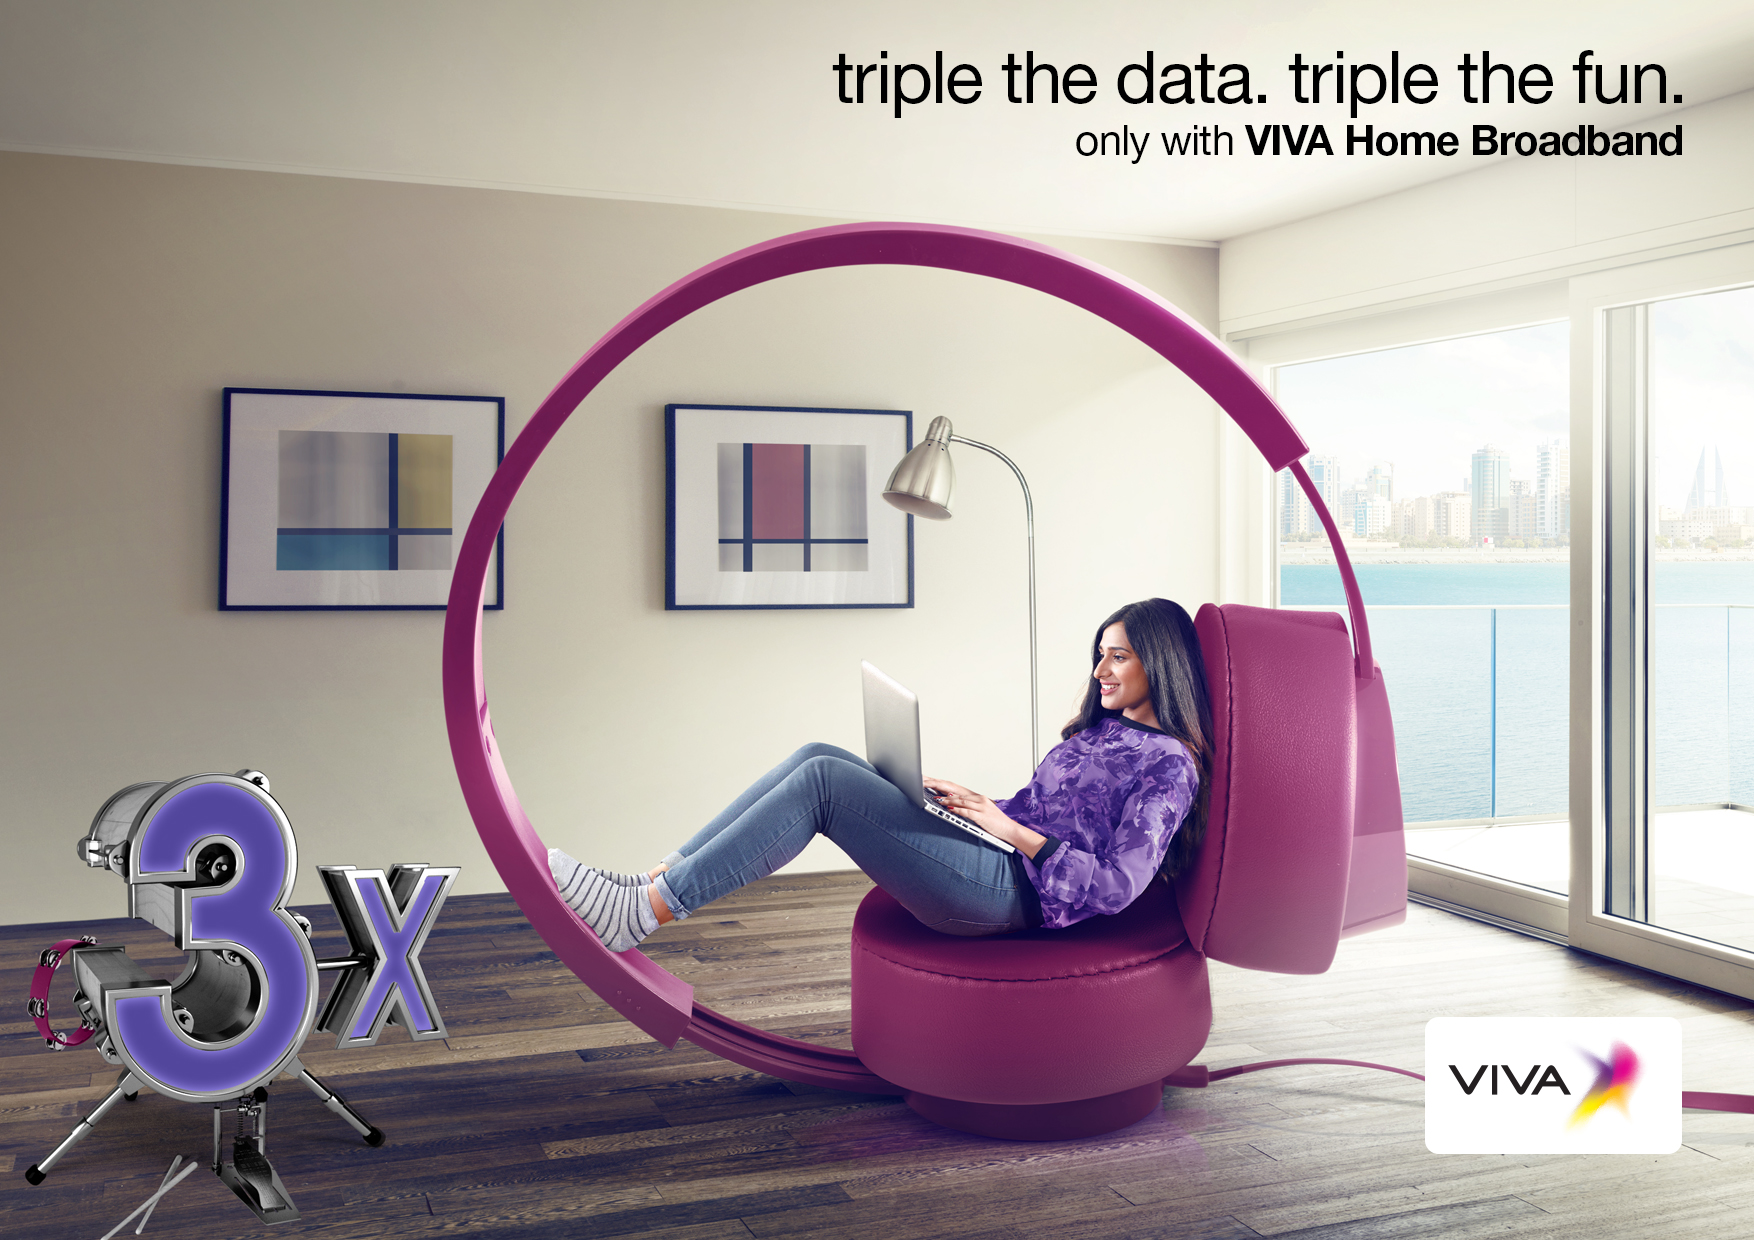 Triple Data With Viva Home Broadband Plans